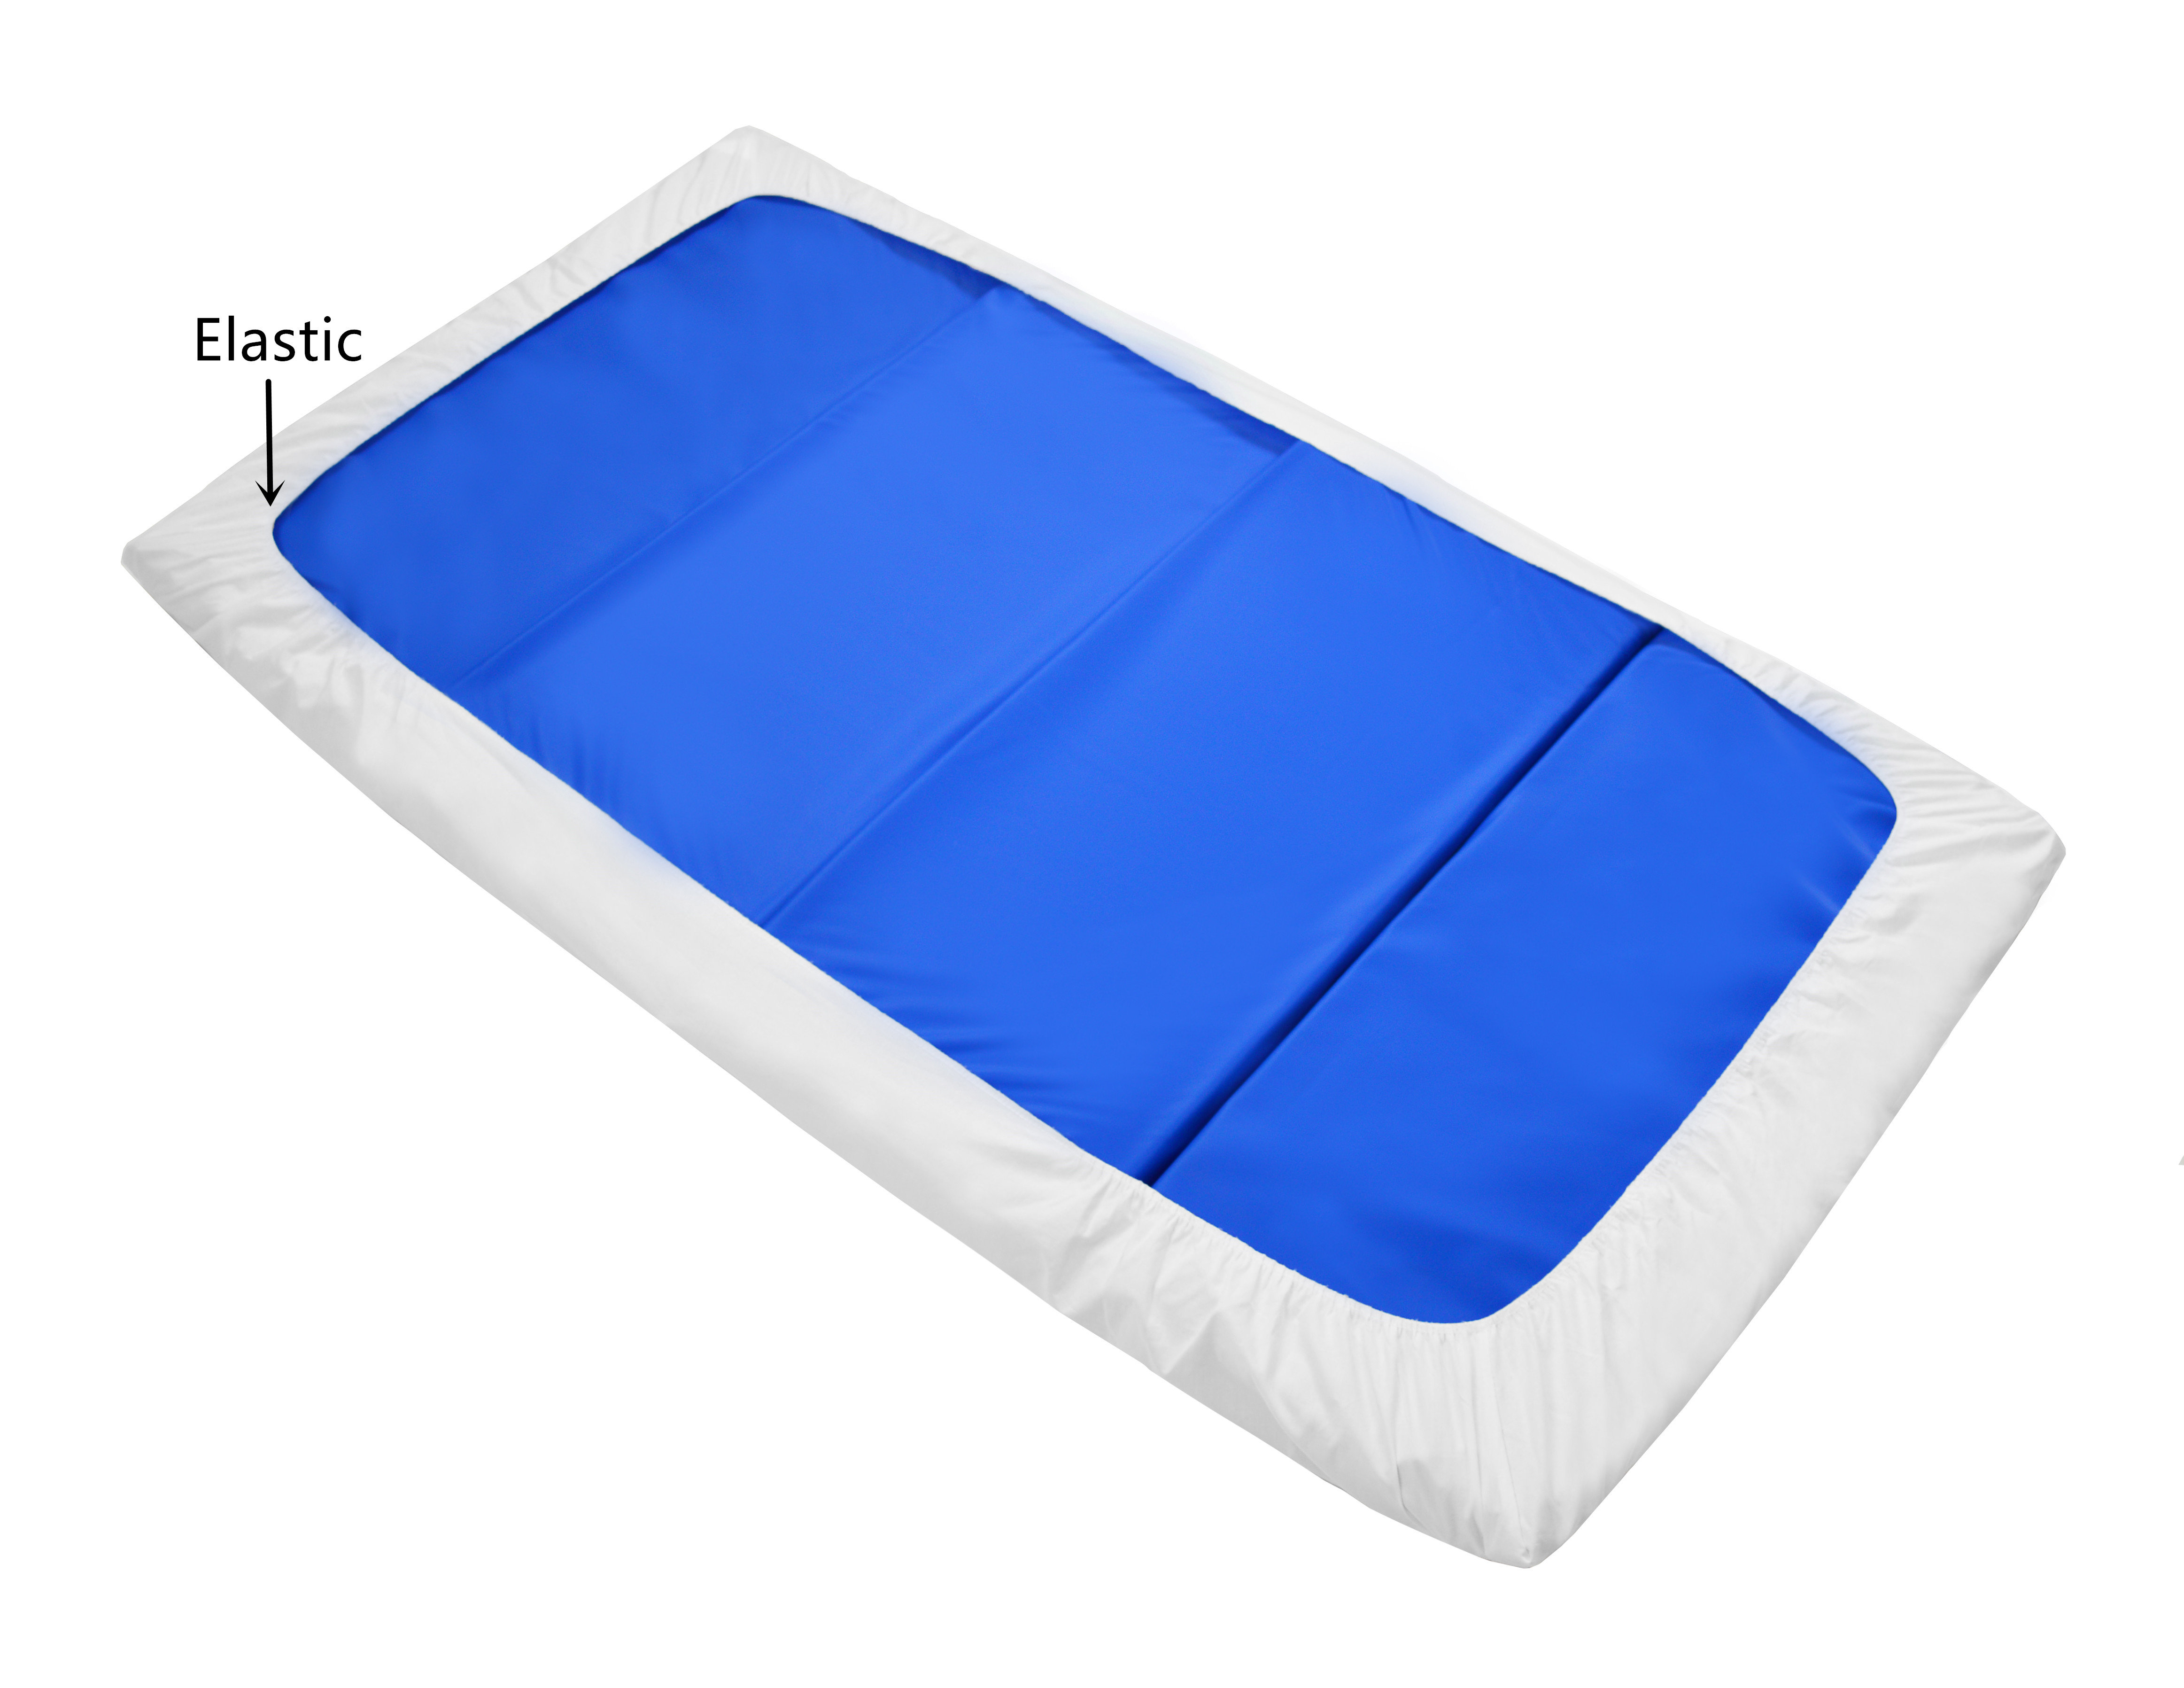 Rest Nap Mat Sheets With Elastic Corners Americanbabycompany